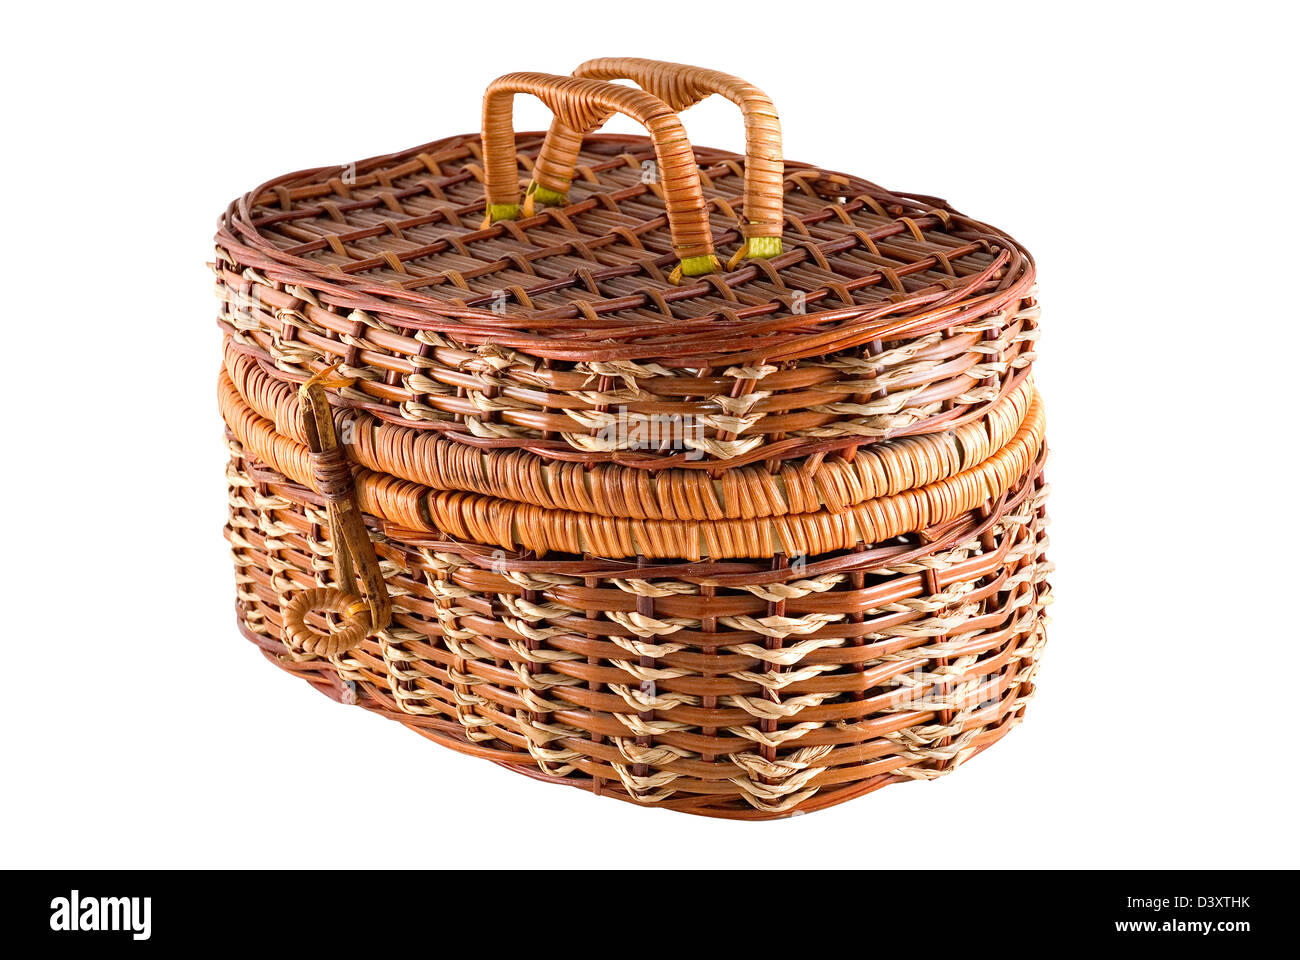 Bast-basket is photographed on a white background - Stock Image